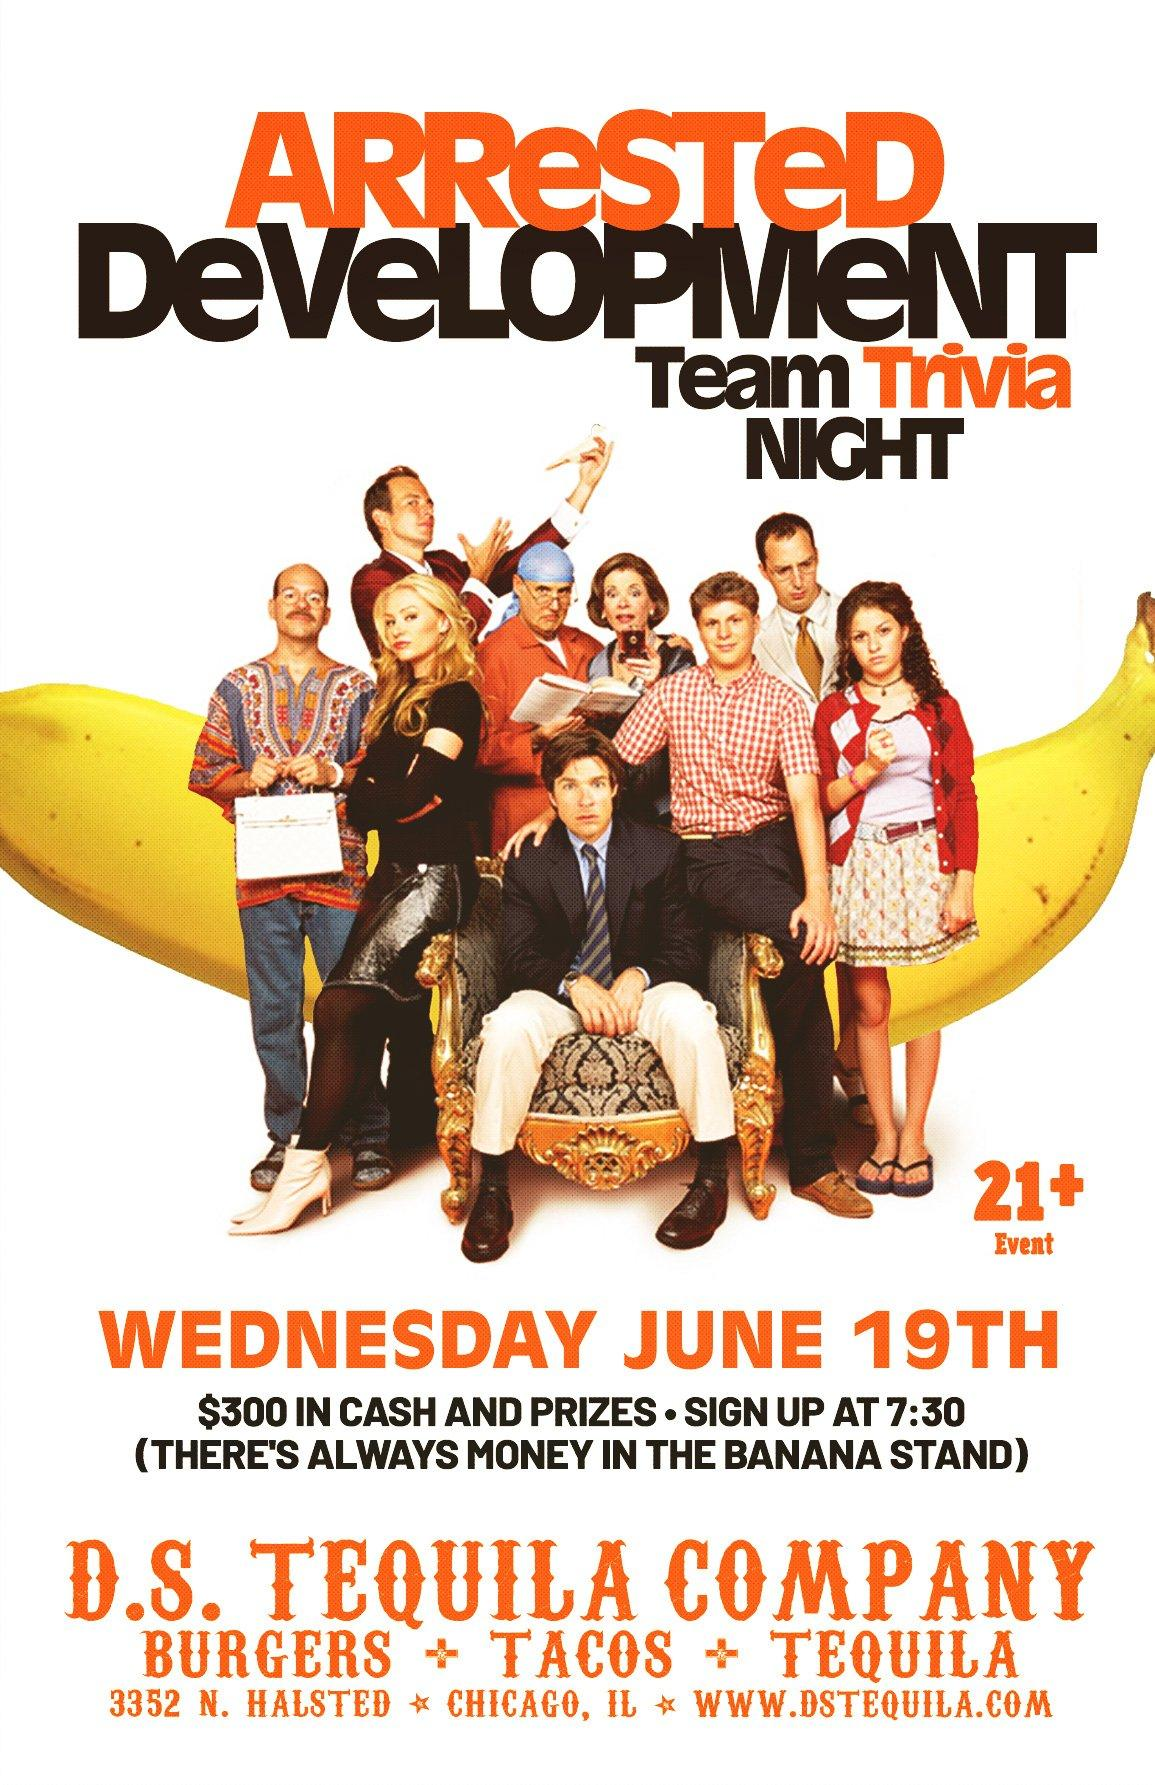 ds-trivia-arrested-development